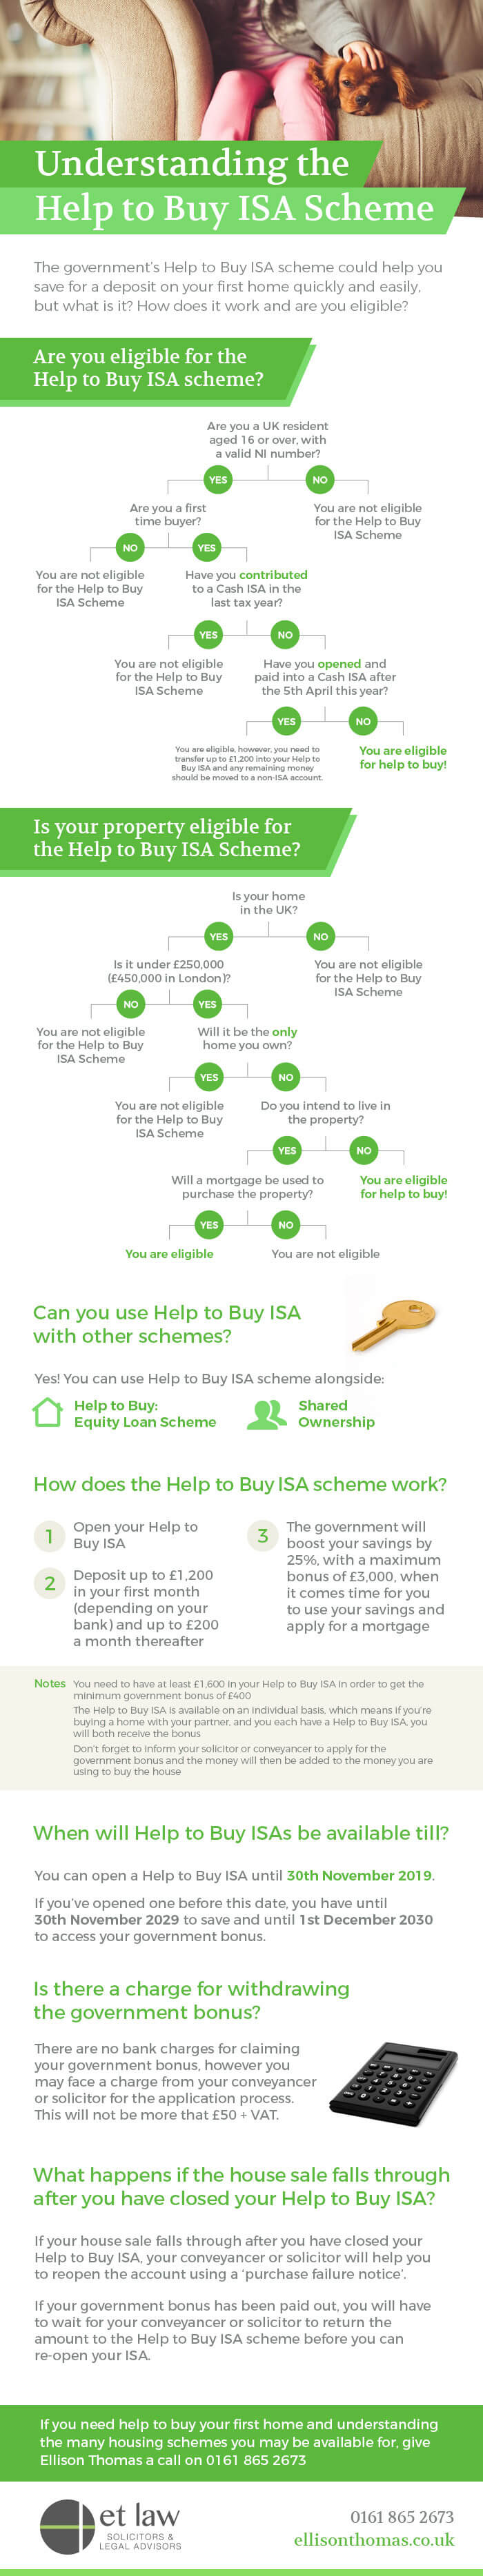 Help to buy ISA infographic